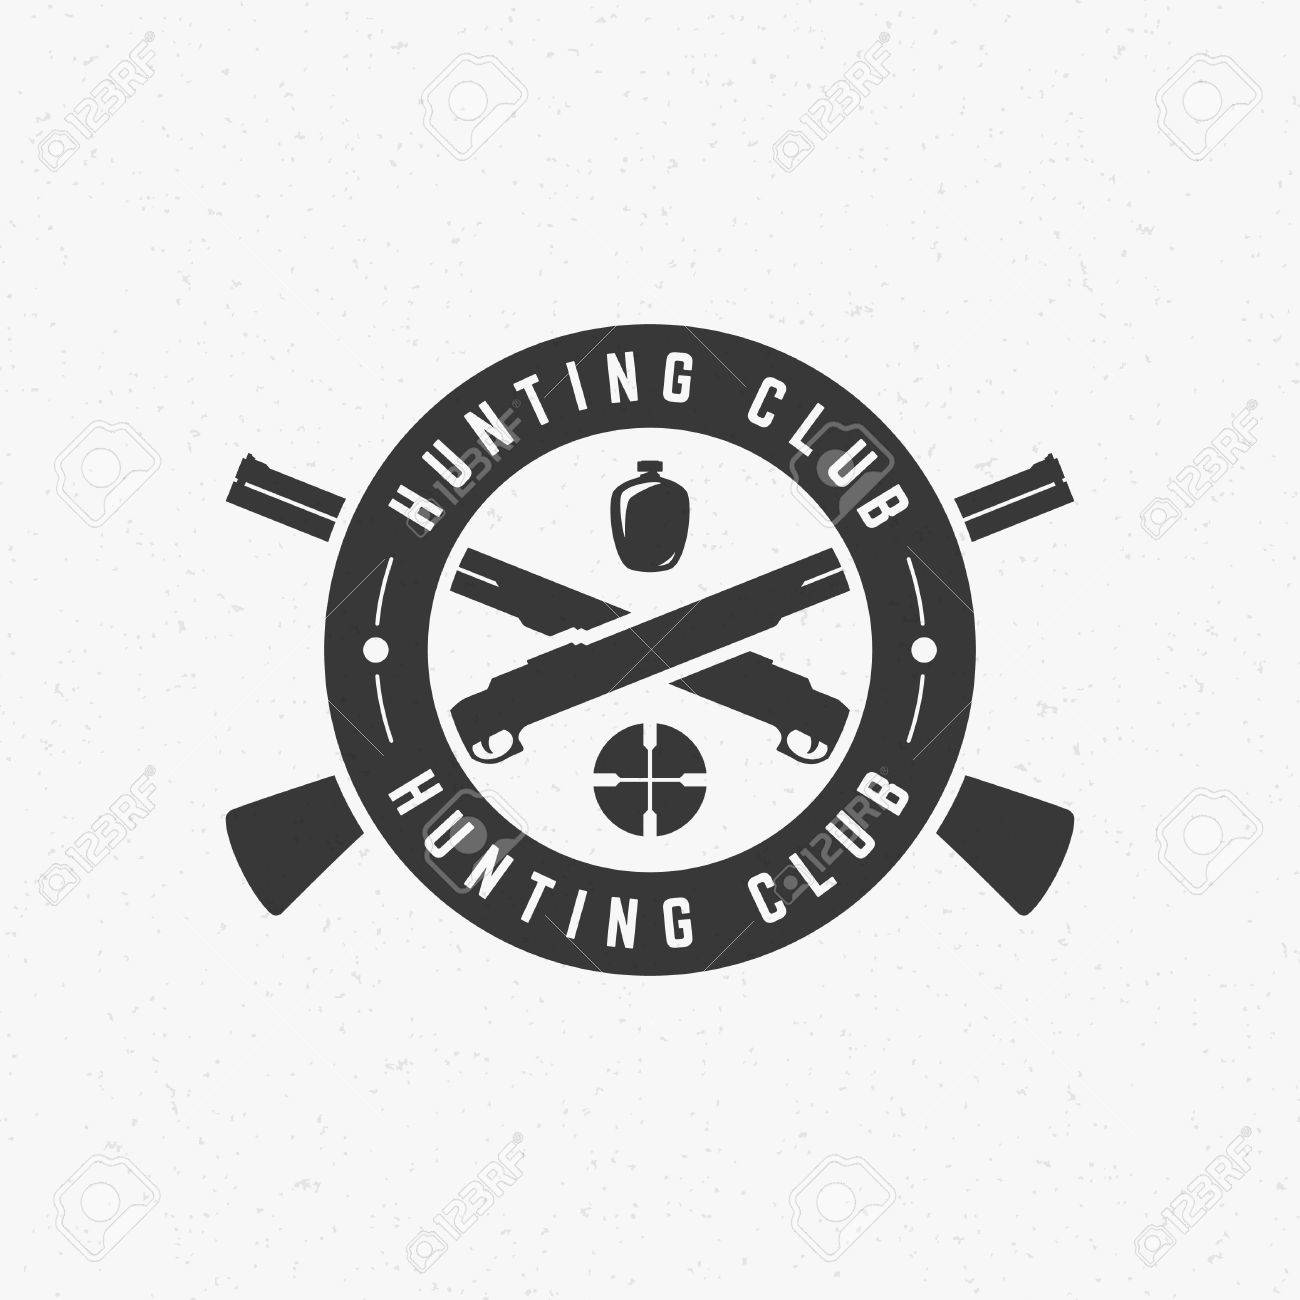 Hunting Club Vintage Logo Template Emblem Cross Guns And Target